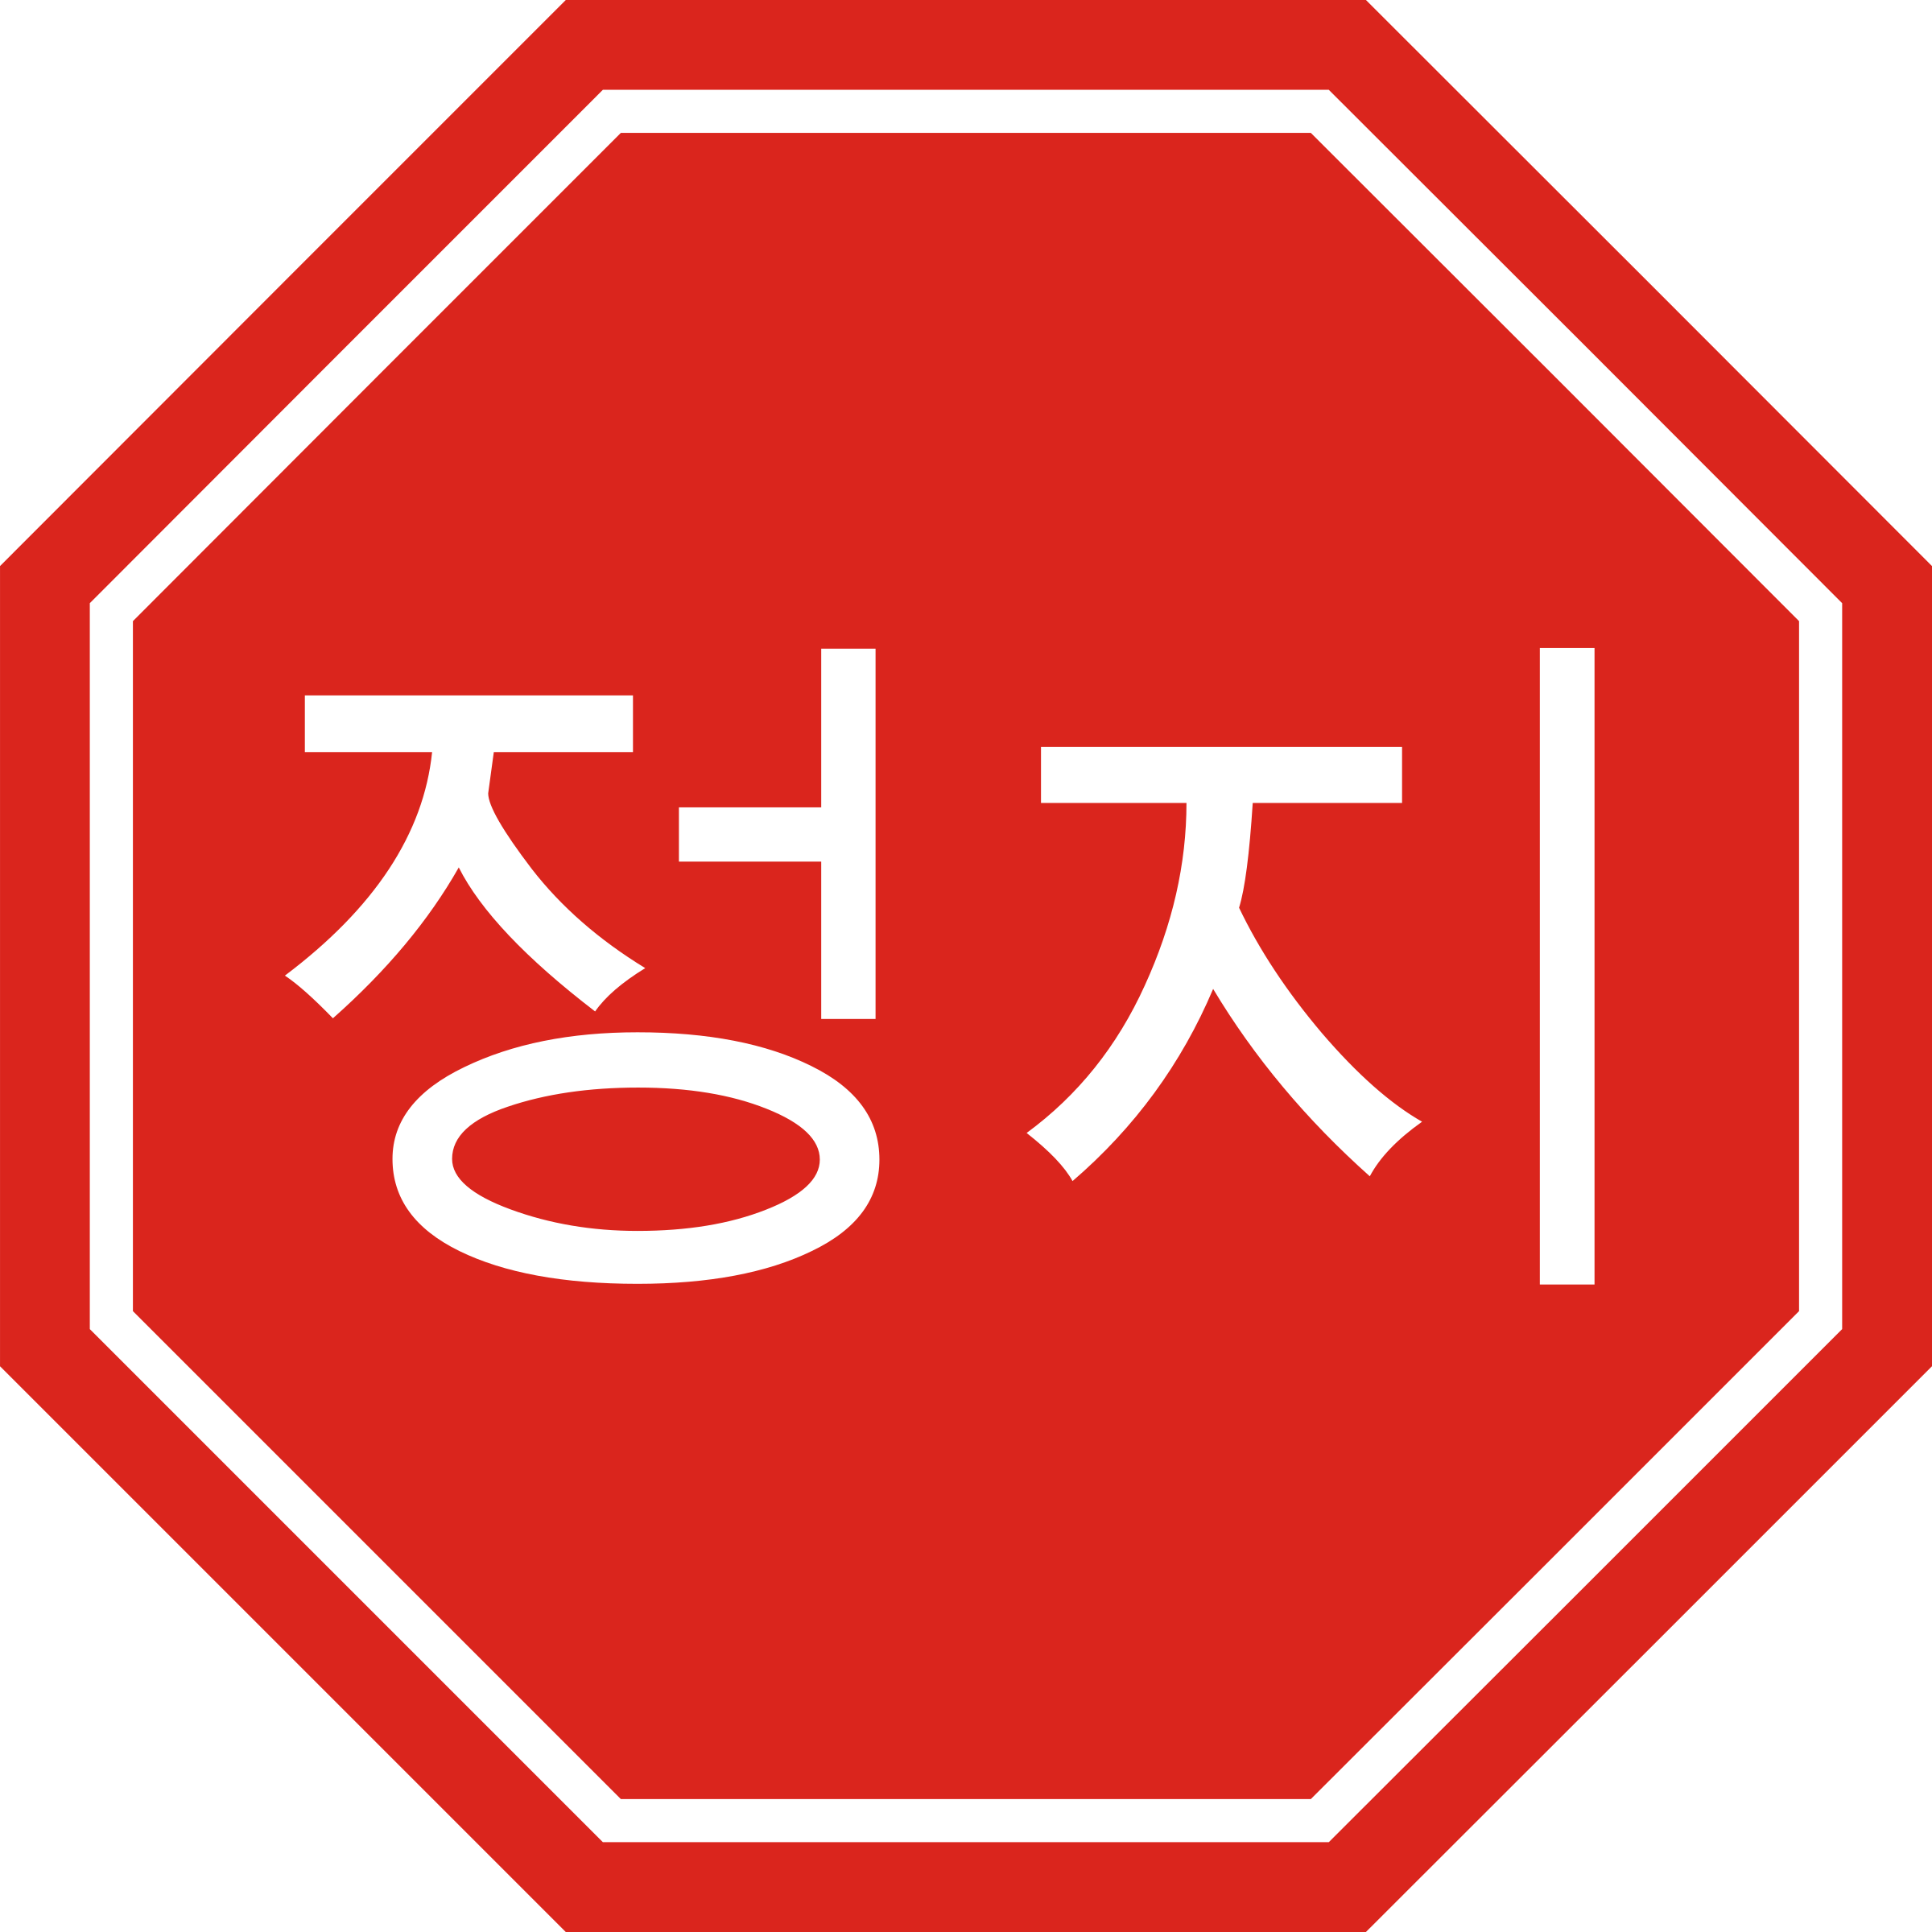 Korean Stop Sign by j4p4n